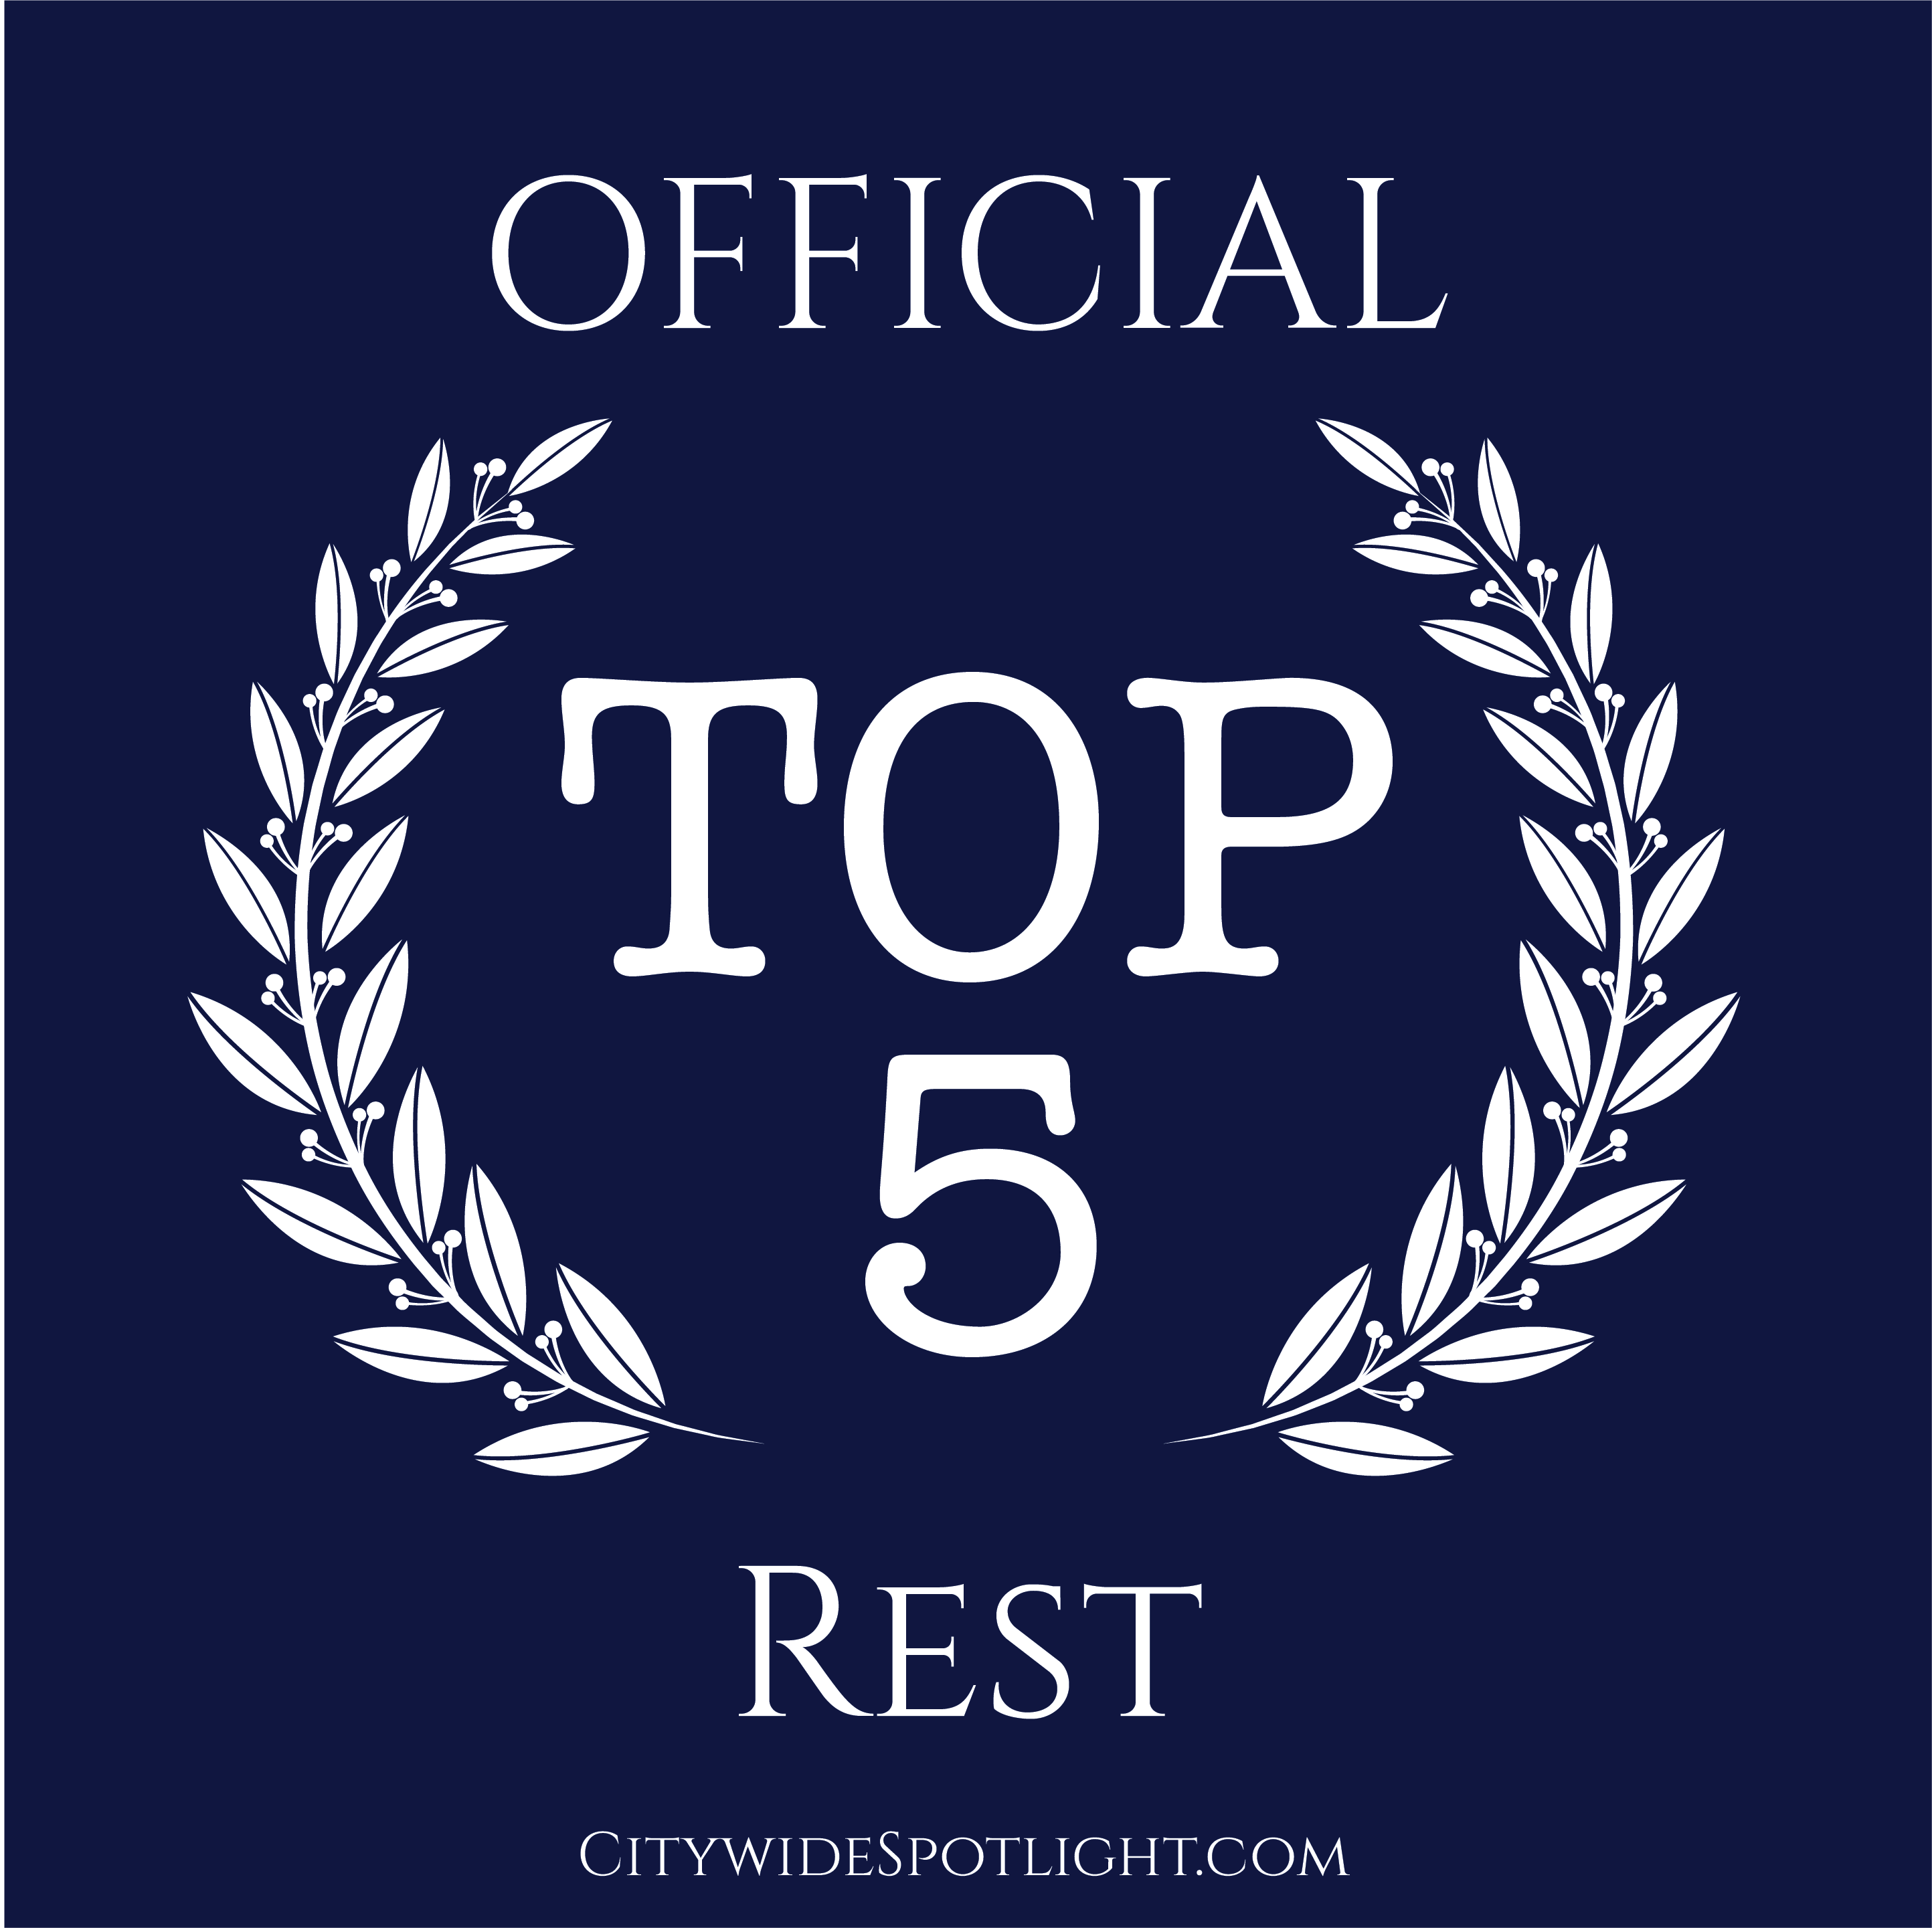 Winner Top 5 Rest - Plaza la Reina